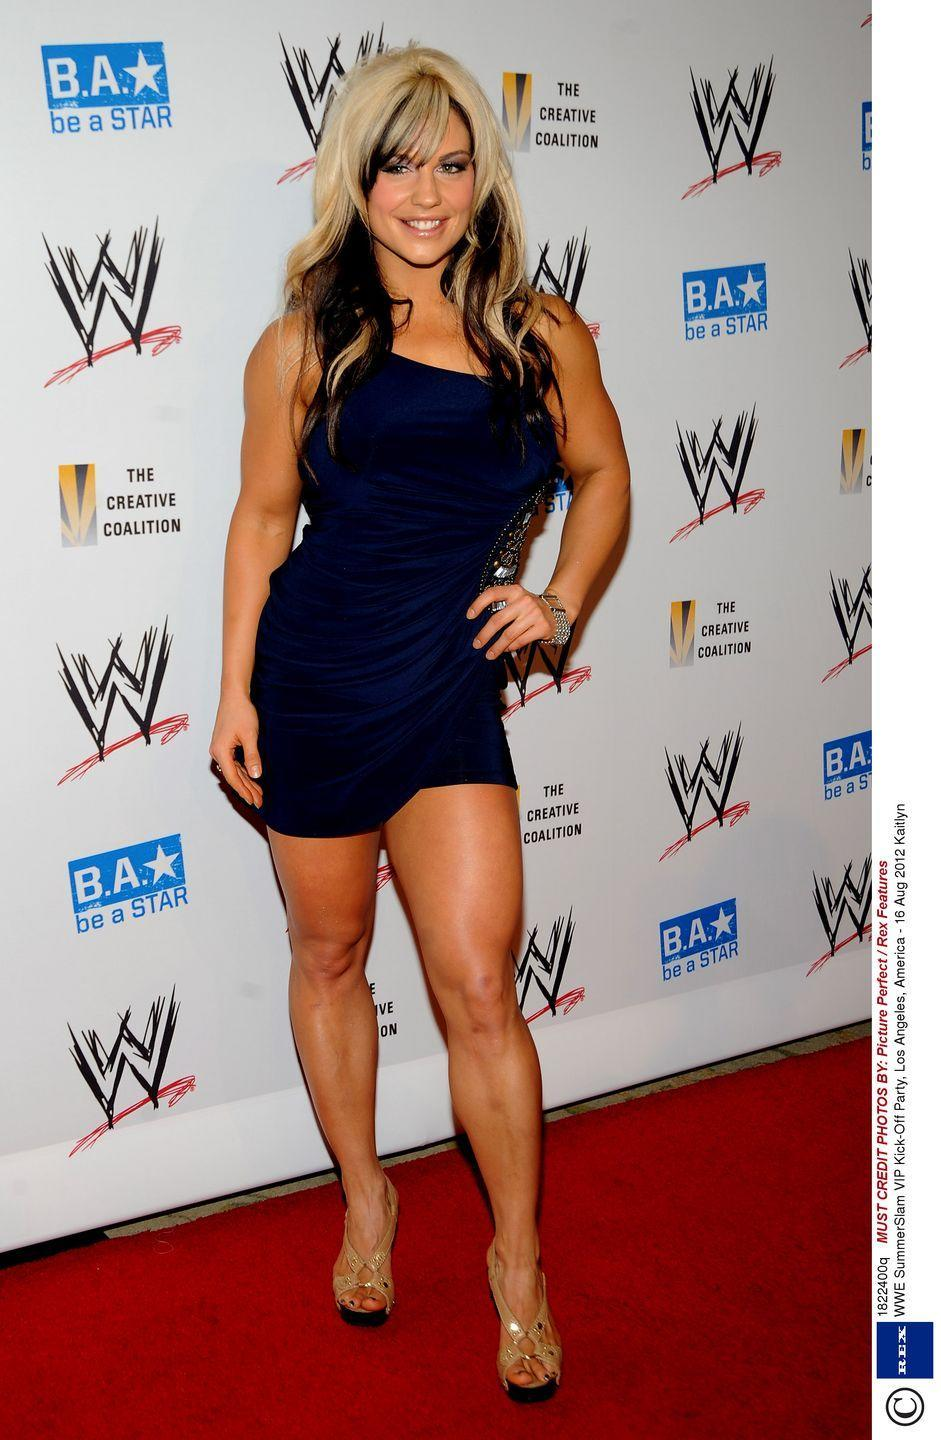 "<p>Between the bra and panties year and these post-(r)evolutionary times in the Women's Division, there are a few wrestlers who have been unfairly forgotten. Women who kept the flame burning in the WWE and put in the work to help us get where we are today.</p><p>A veteran of the original NXT, Kaitlyn won season three and made her way to the main roster in 2010, winning her first and only WWE Divas Championship two years later on the 20th anniversary of Raw.</p><p>A <a href=""https://www.digitalspy.com/tv/wwe/news/a542789/kaityln-leaves-wwe-after-final-bout-with-aj-lee-video/"" rel=""nofollow noopener"" target=""_blank"" data-ylk=""slk:Chickbuster alongside AJ Lee"" class=""link rapid-noclick-resp"">Chickbuster alongside AJ Lee</a>, Kaitlyn didn't get the opportunities she deserved, but she was a massively important part of the story of women's wrestling in the WWE. She <a href=""https://www.digitalspy.com/tv/wwe/news/a579697/former-wwe-divas-champion-kaitlyn-marries-confirms-retirement/"" rel=""nofollow noopener"" target=""_blank"" data-ylk=""slk:retired from the business in 2014"" class=""link rapid-noclick-resp"">retired from the business in 2014</a>, but made her return last December with Coastal Championship Wrestling.</p><p>She DID of course return to the WWE in the 2018 Mae Young Classic, but was eliminated in the second round by Mia Yim. In that short mini-comeback she proved that she still has what takes for a proper return to the big time.</p>"